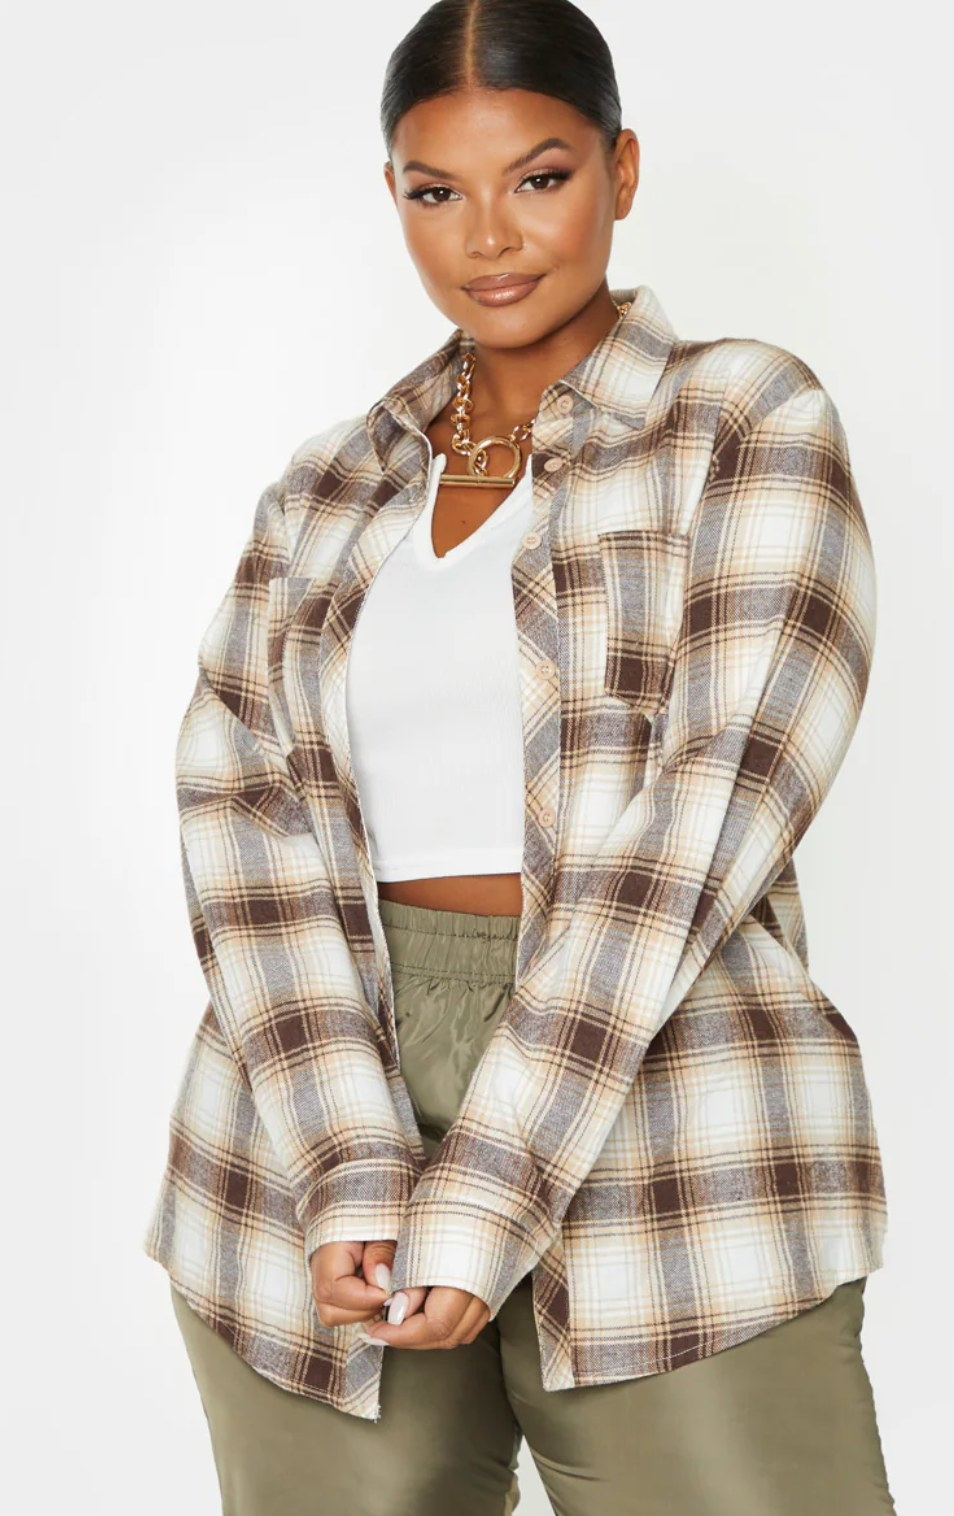 model wearing the flannel oversized shirt over a white shirt and green pants